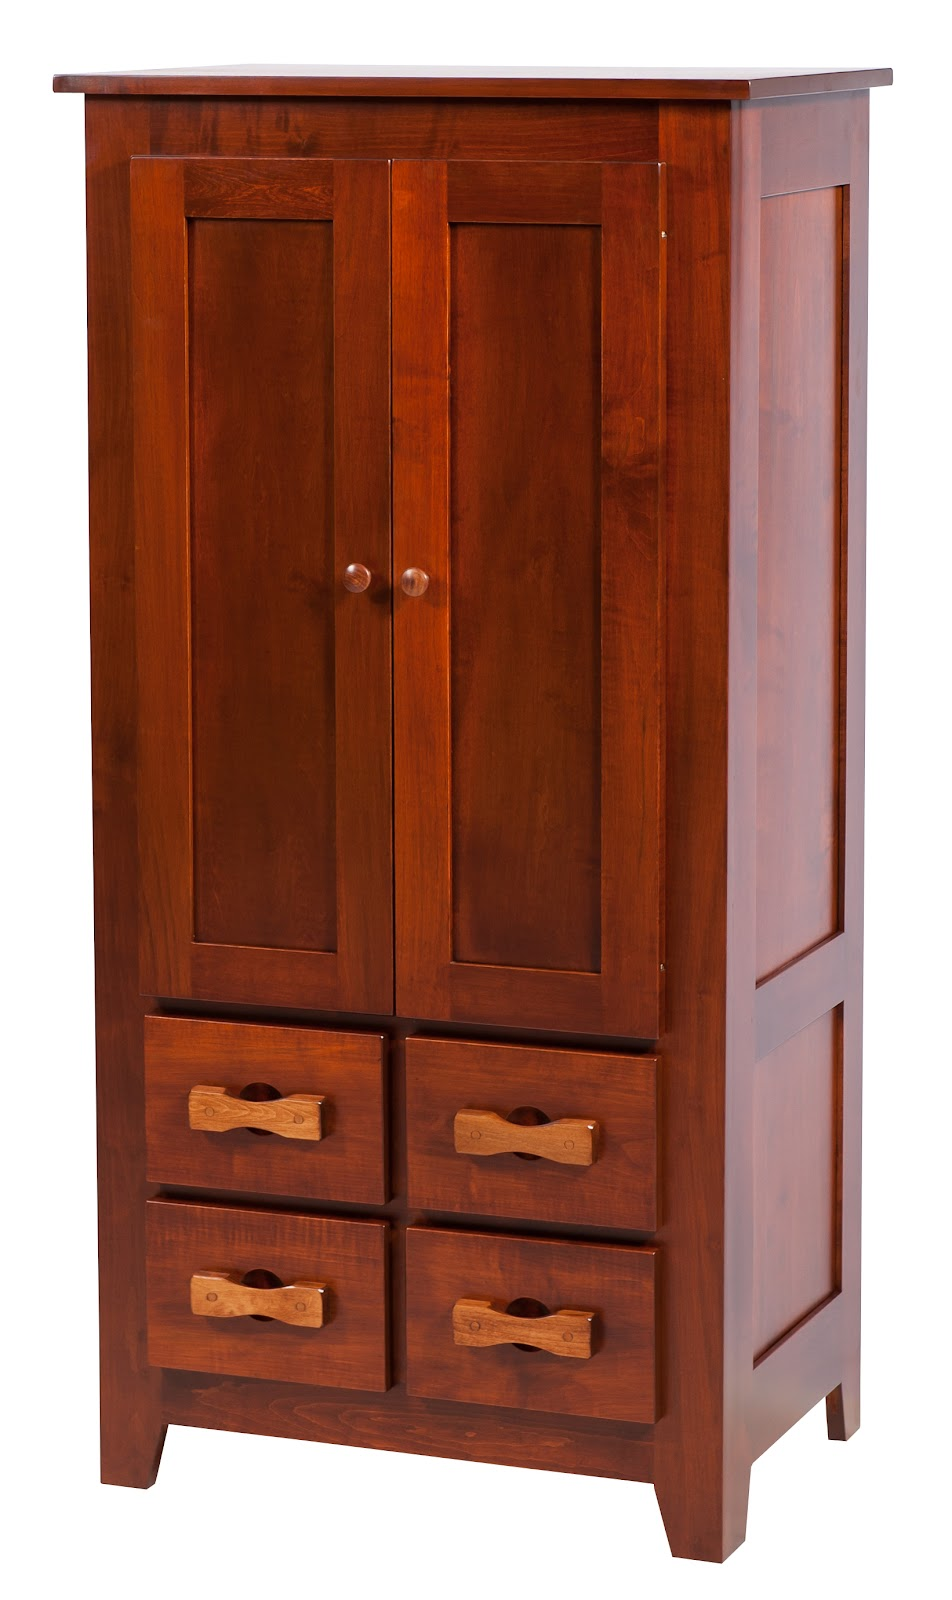 Shaker Armoire Dressers  Solid Wood Dresser in the Shaker Style